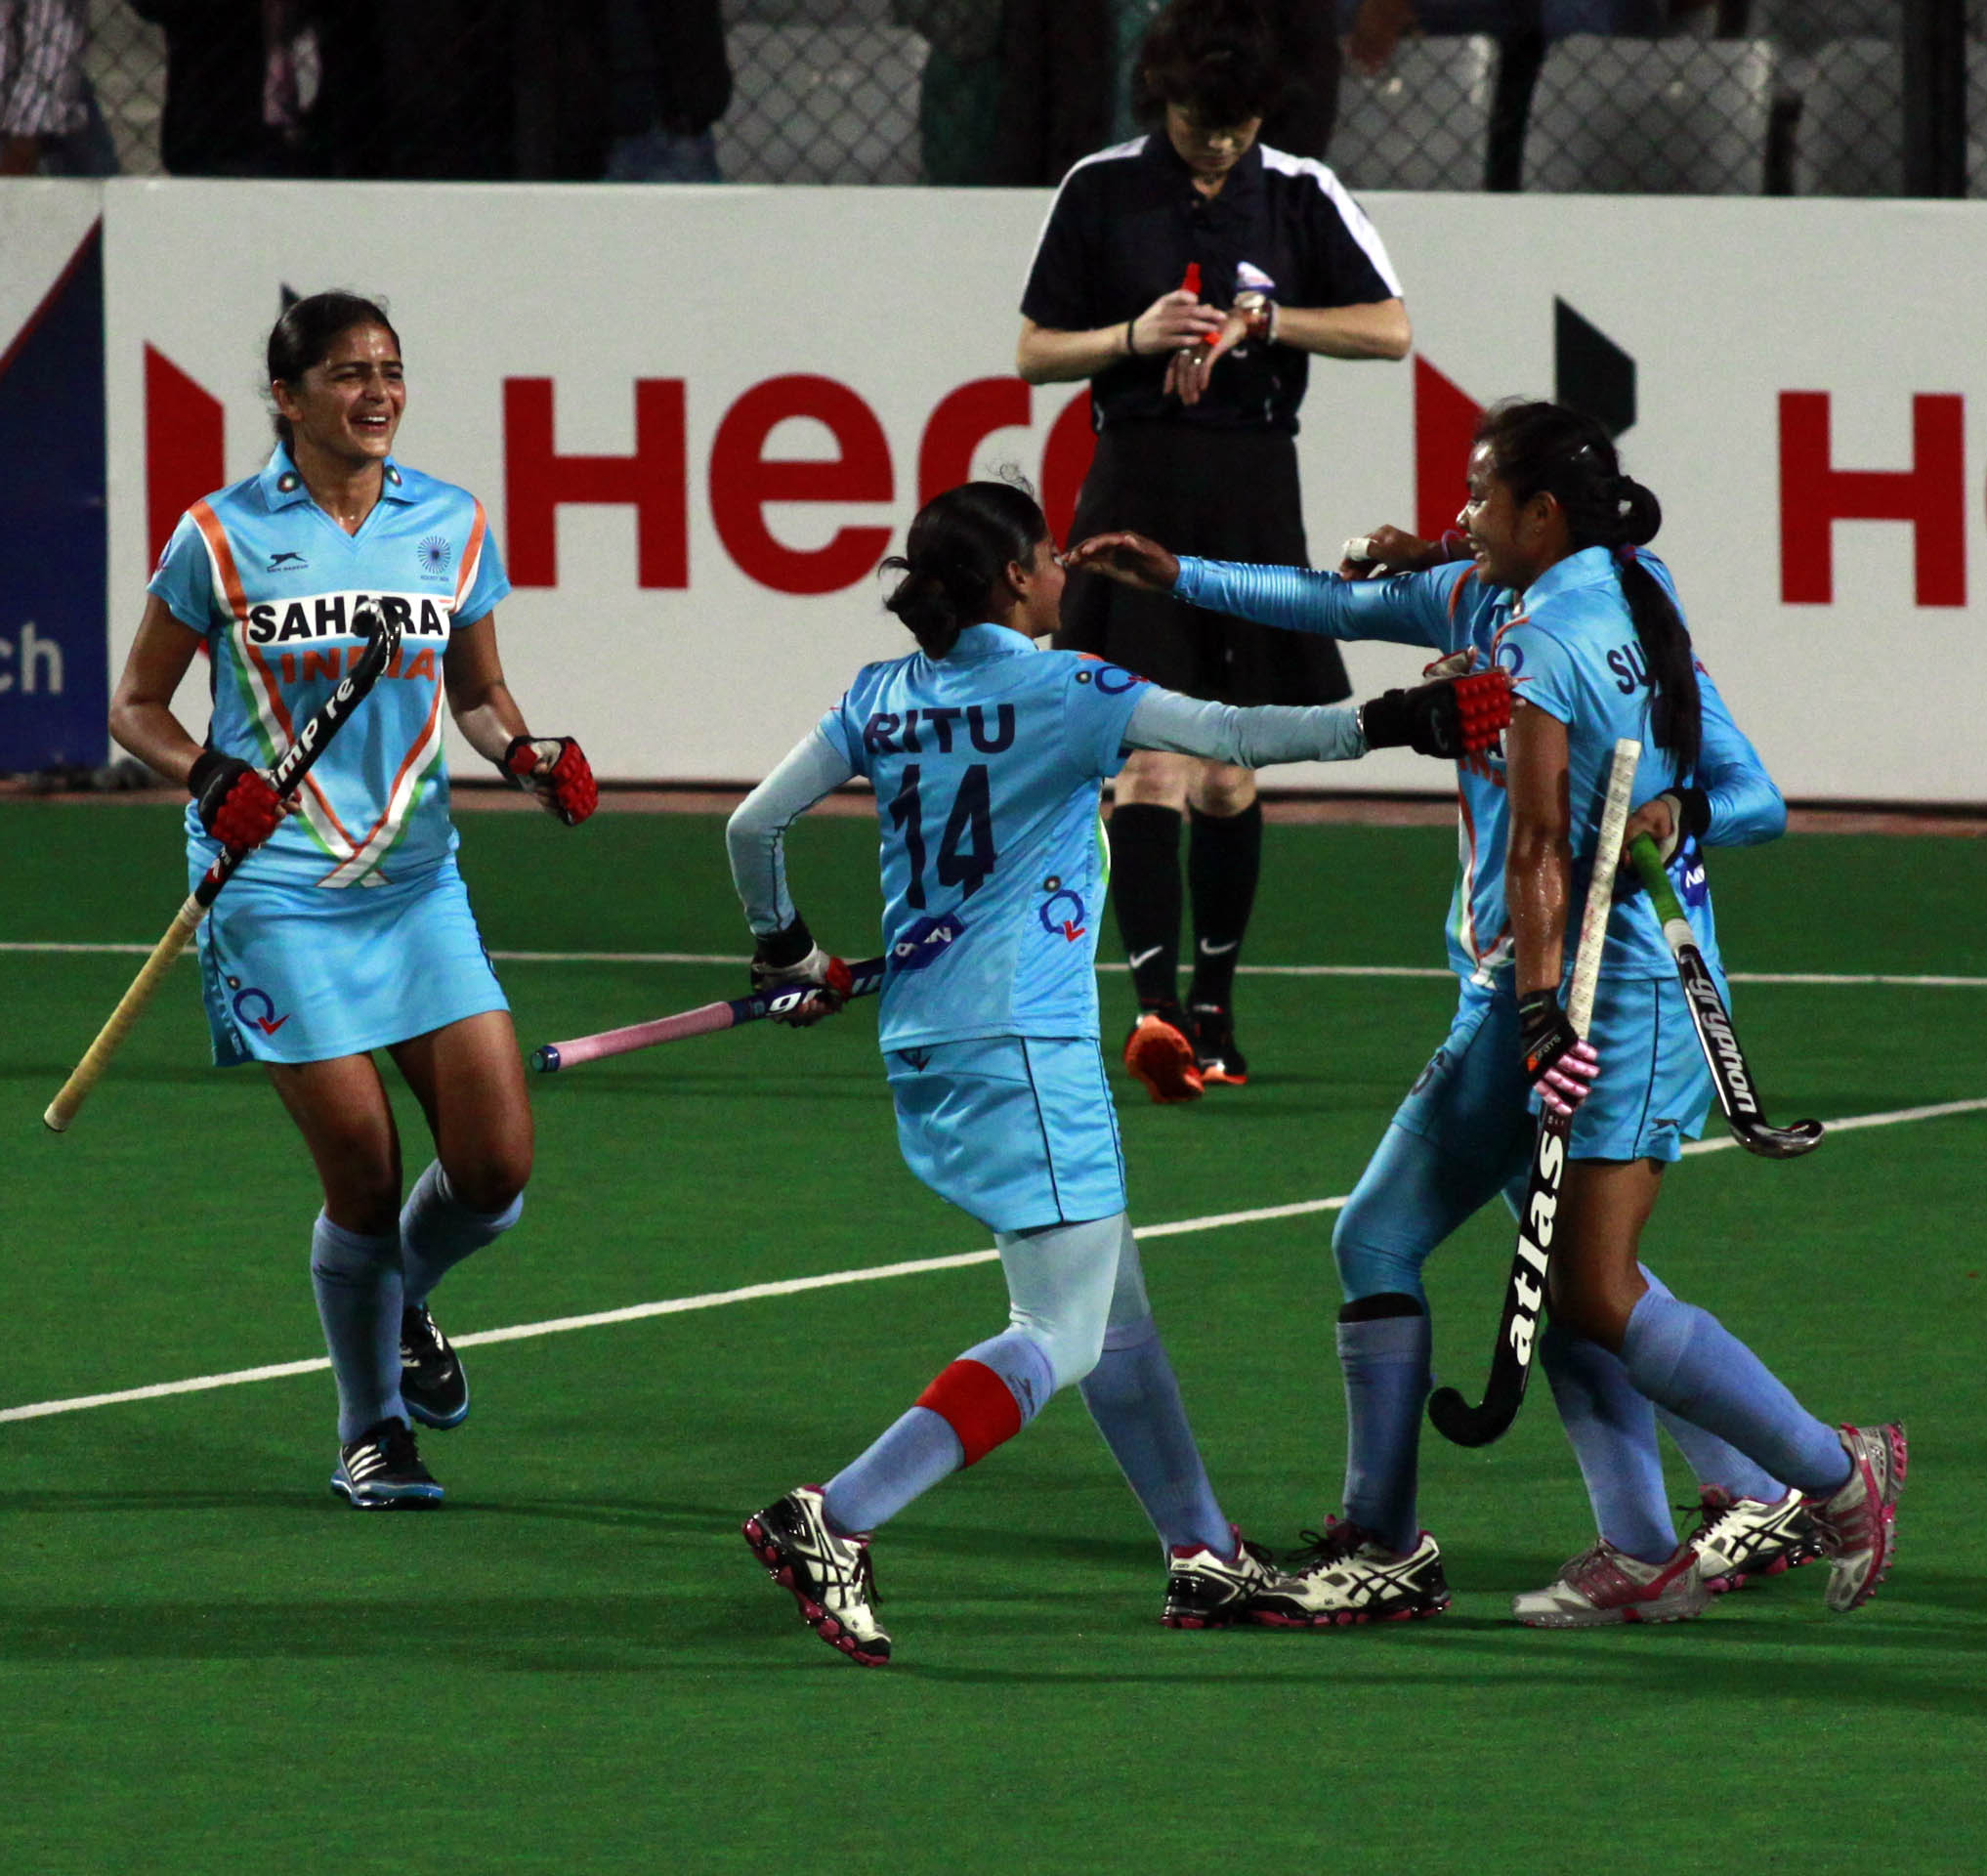 - Hero Hockey World League 2013 Indian team after won the match 2